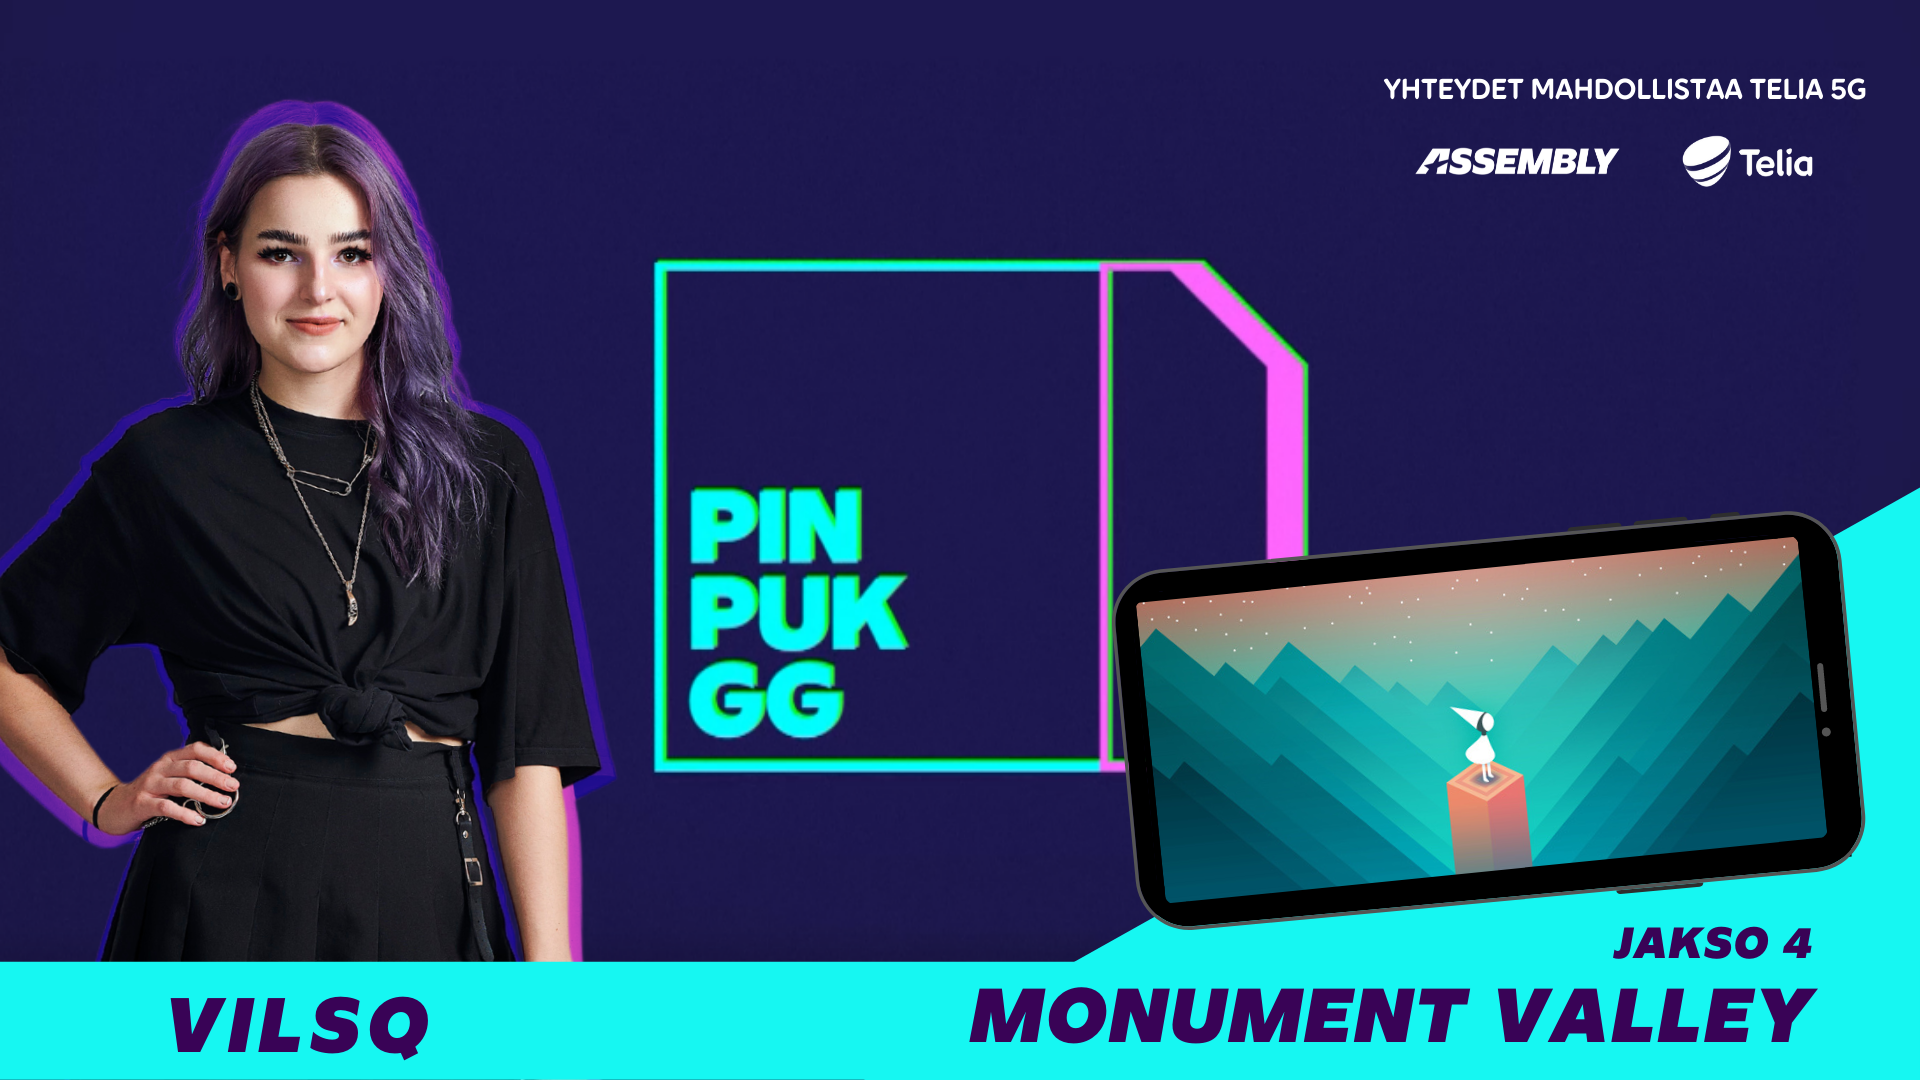 PinPukGG jakso 4: Monument Valley